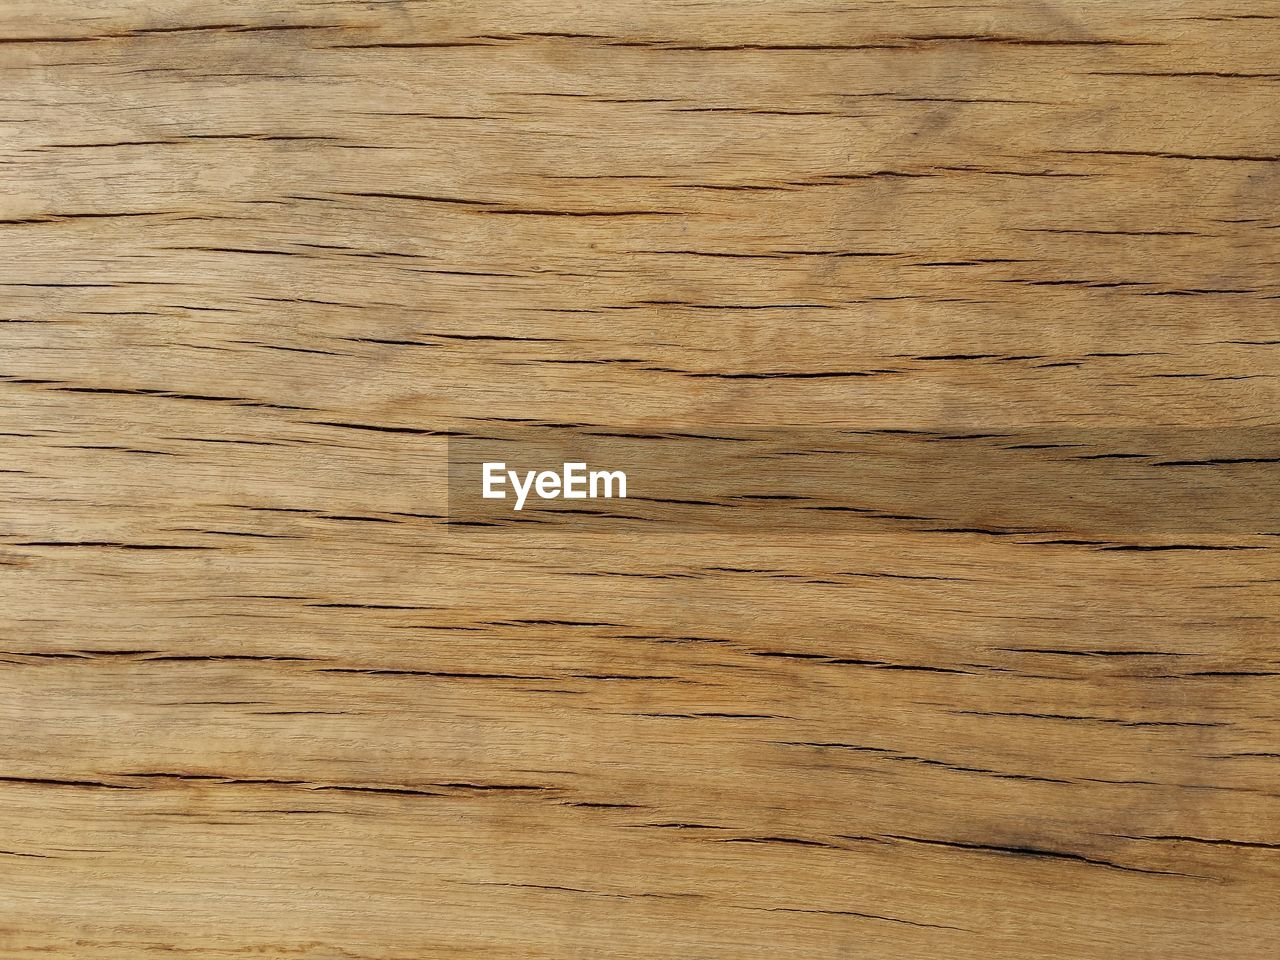 backgrounds, wood - material, wood grain, textured, wood, pattern, full frame, material, brown, plank, tree, no people, timber, close-up, flooring, hardwood, old, rough, copy space, antique, abstract, surface level, textured effect, blank, outdoors